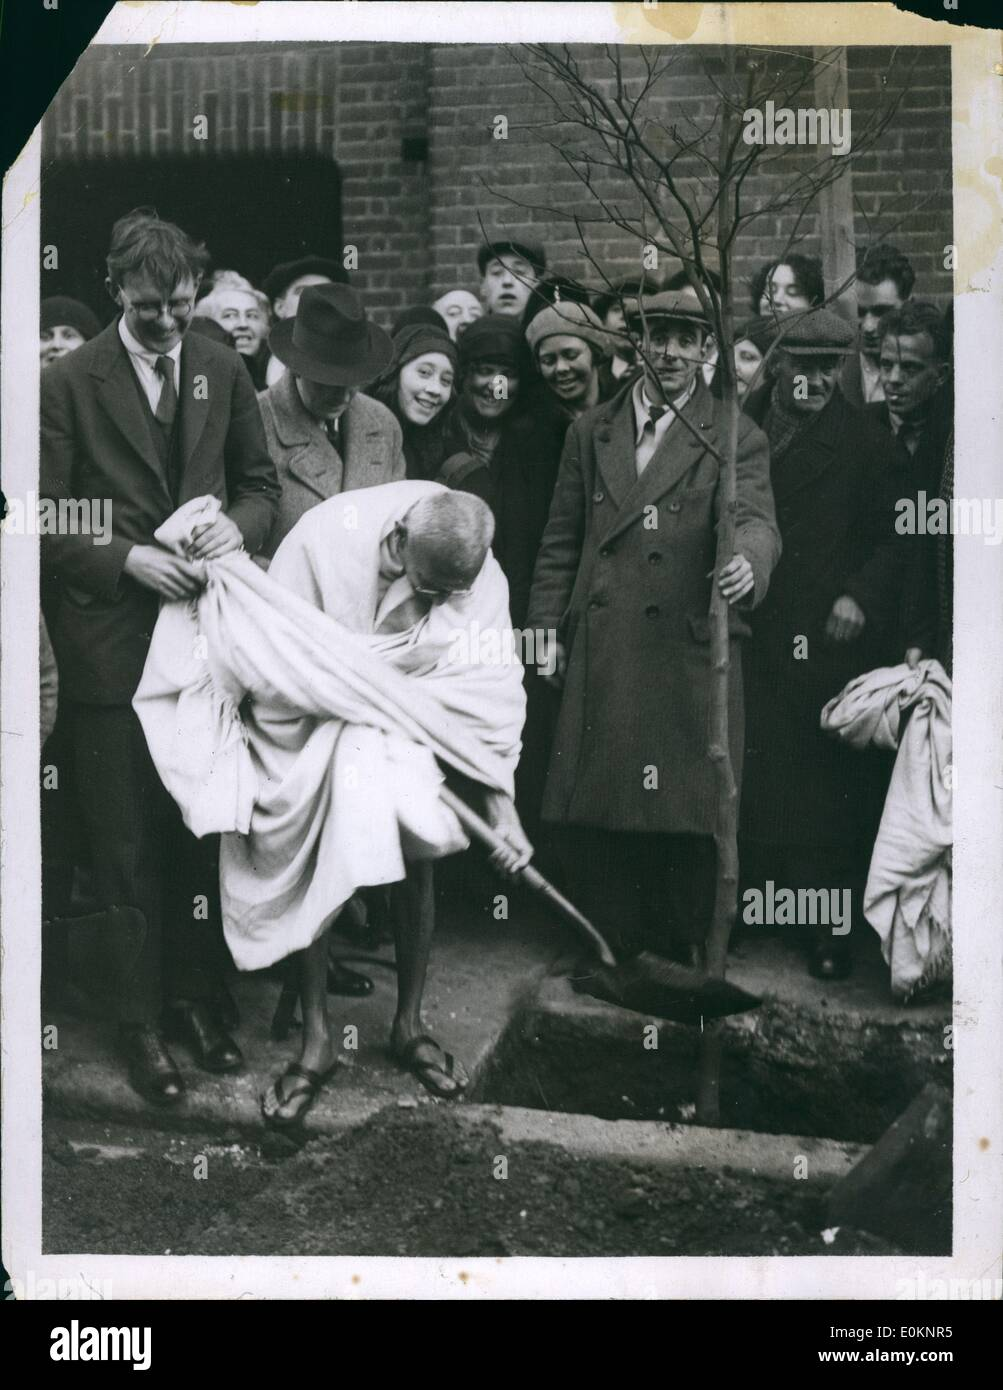 12, 1931 - Gandhi Plants Tree Outside Ringsley Hall: Mr. Gandhi planted a  tree outside Eingsley Hall, Bow, E. this morning